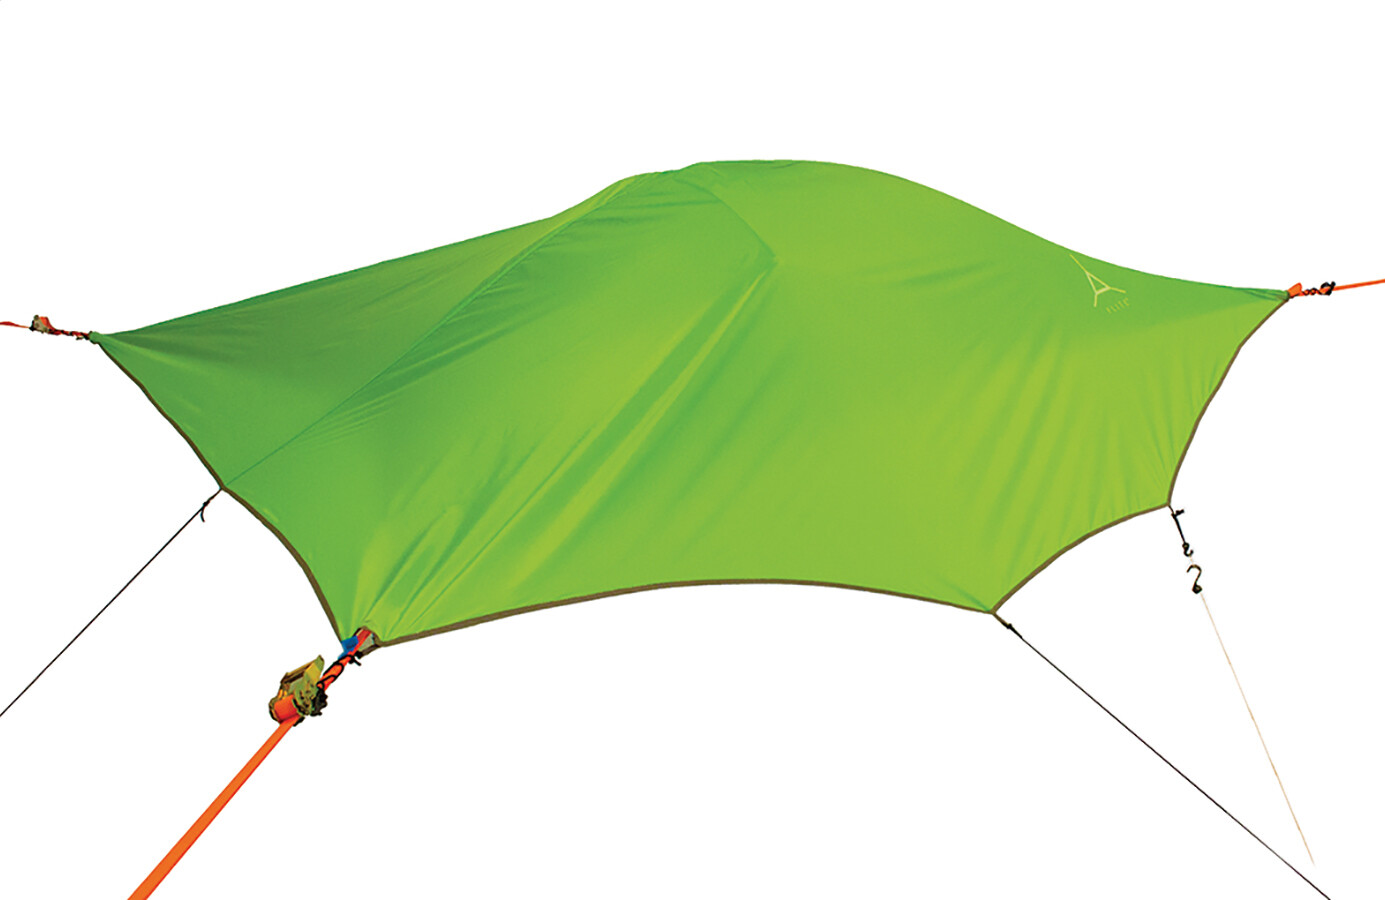 Tentsile Flite+ Telt, fresh green (2019) | Misc. Transportation and Storage